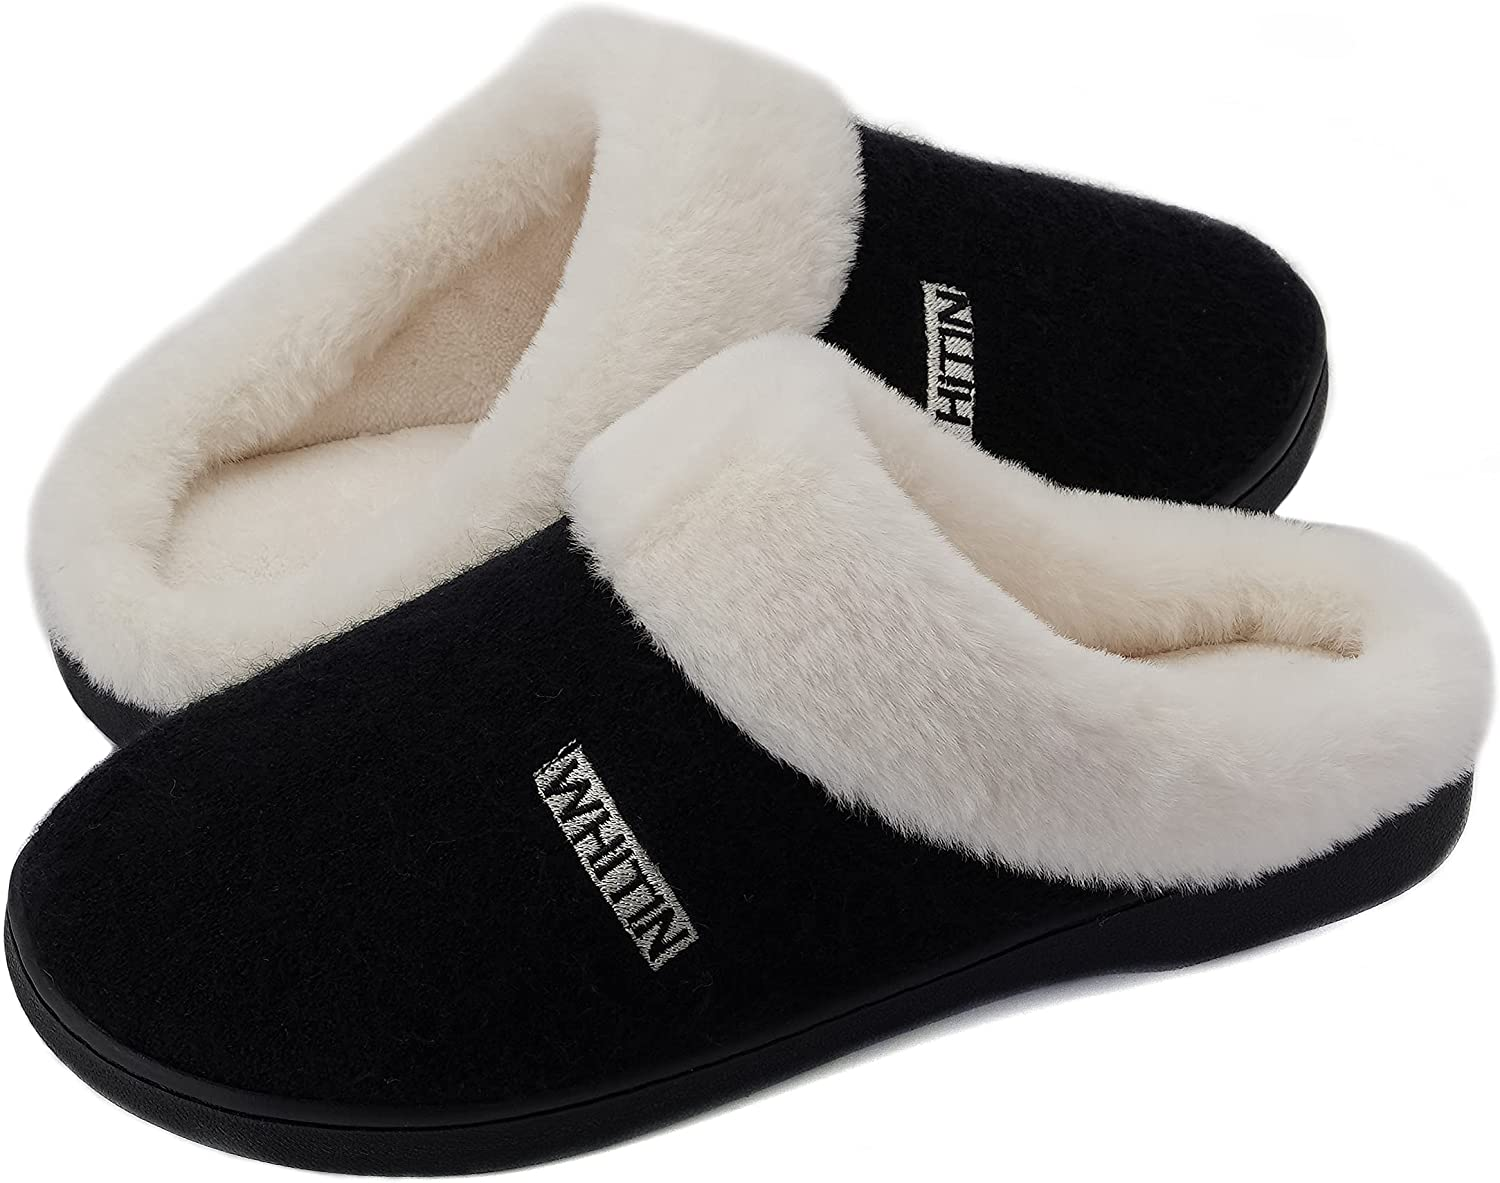 WHITIN List price Women's Knit Warm Fluffy Memory Year-end annual account Foam S Bedroom House Soft